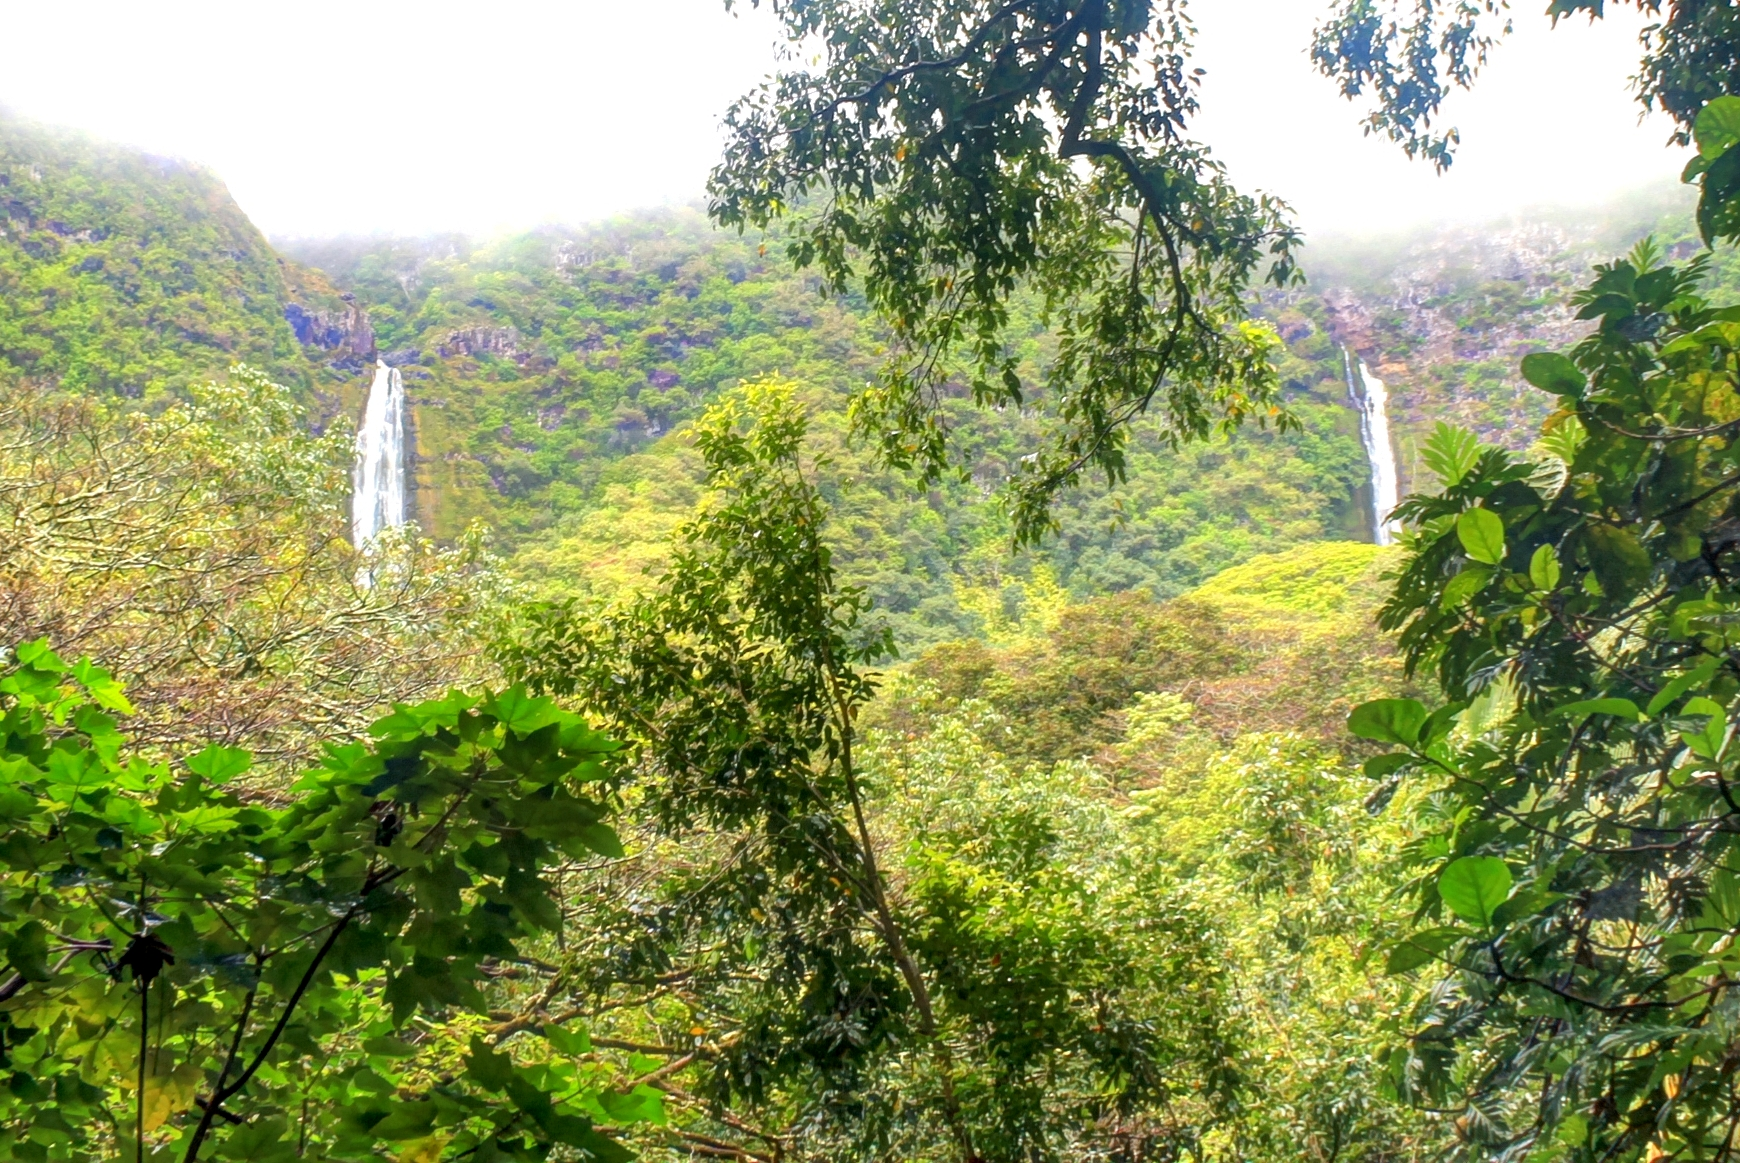 Hiking the lush Halawa Valley to Moa'ula Waterfall